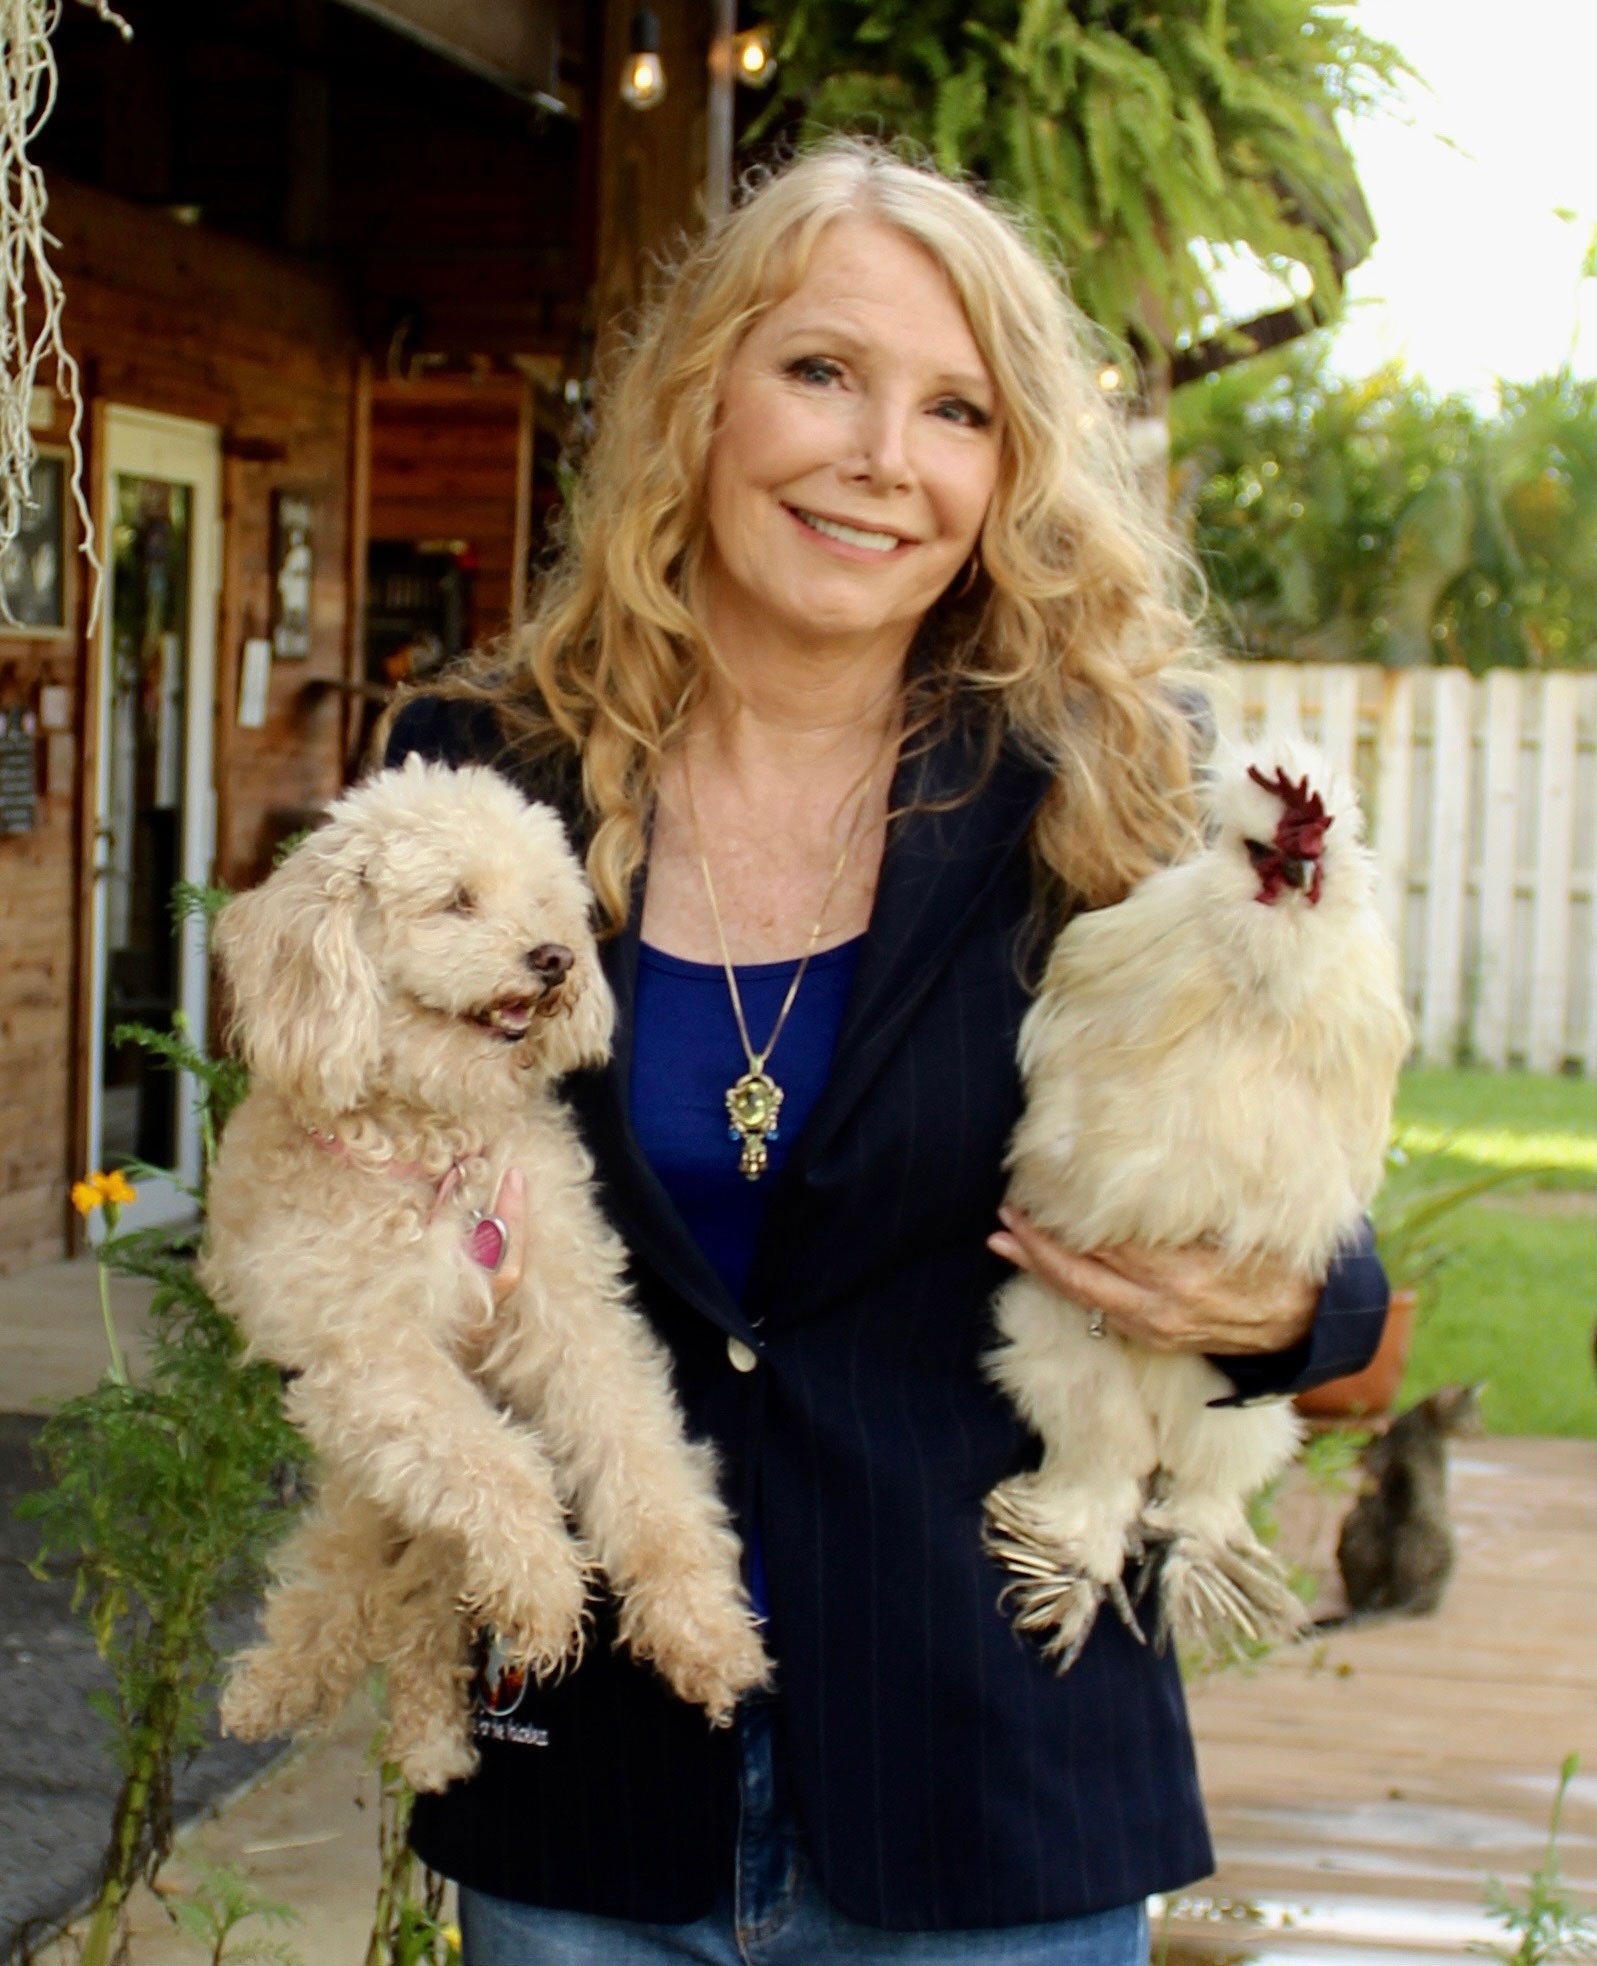 Image of Susan Hargreaves with her dog and a chicken